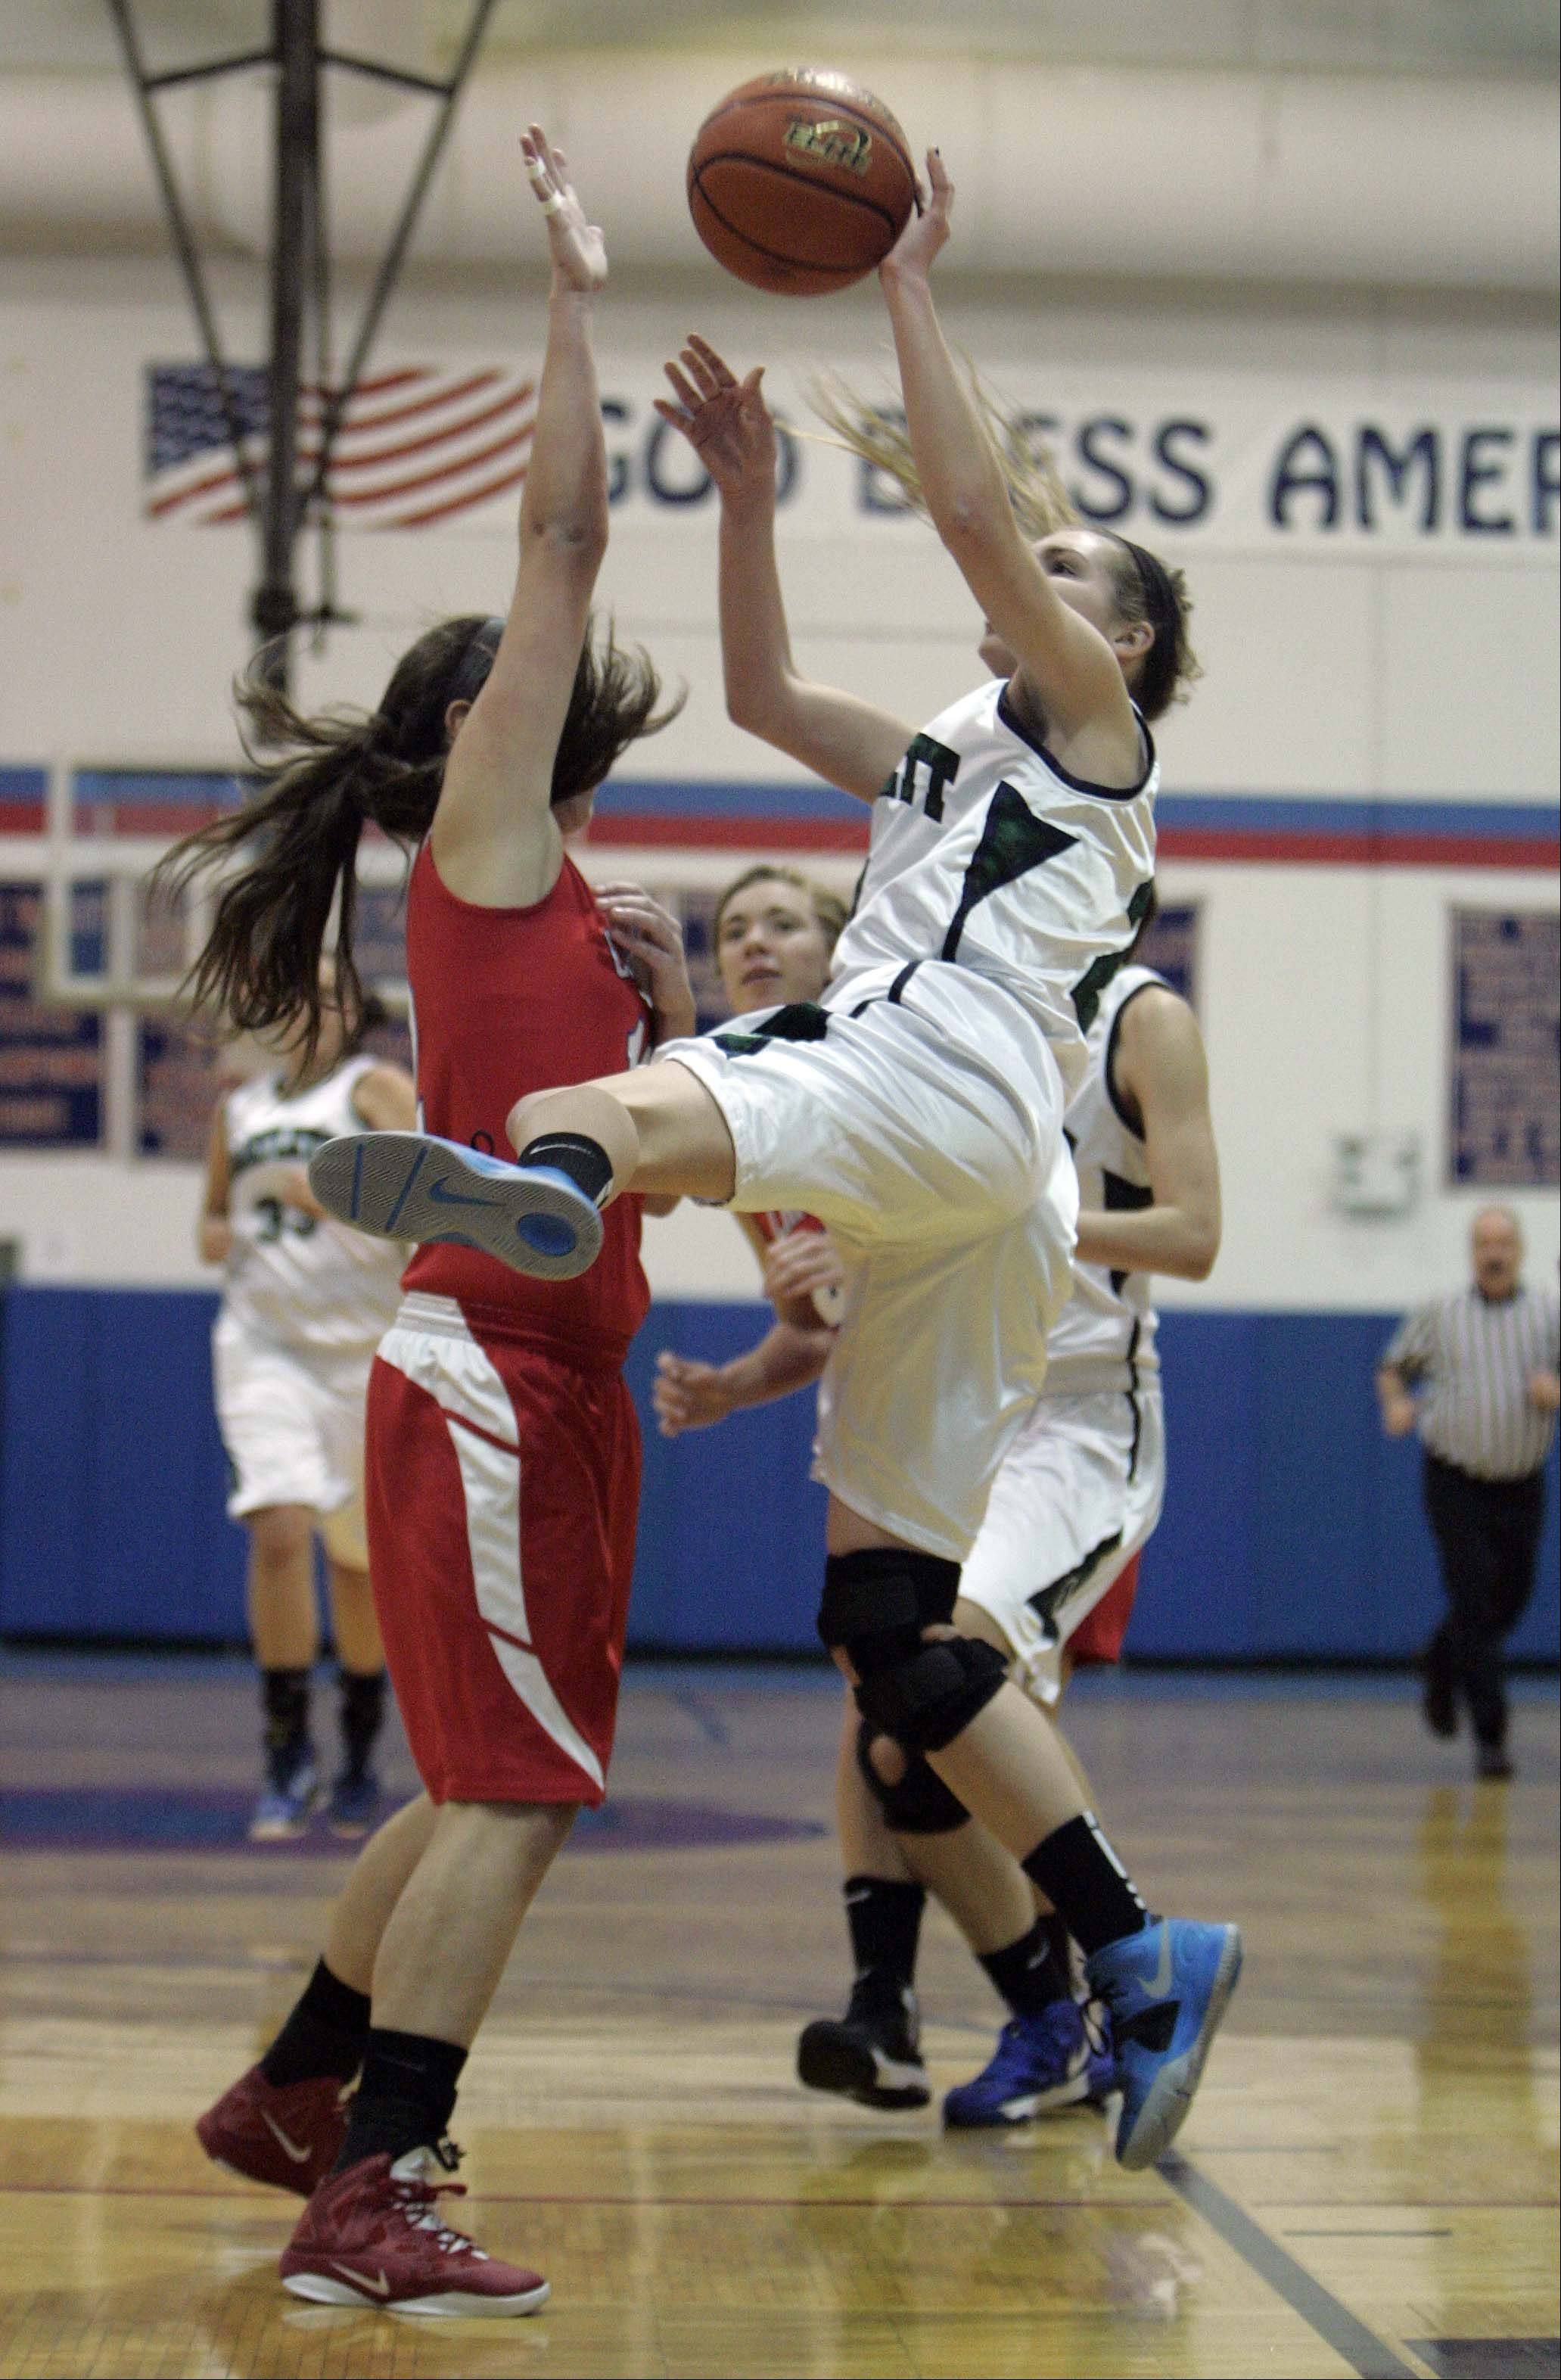 Dundee-Crown's Lauren Lococo applies some pressure as Bartlett's Chantel Zasada (21) goes up for a shot Thursday during the 30th annual Charger Classic Thursday at Dundee-Crown.